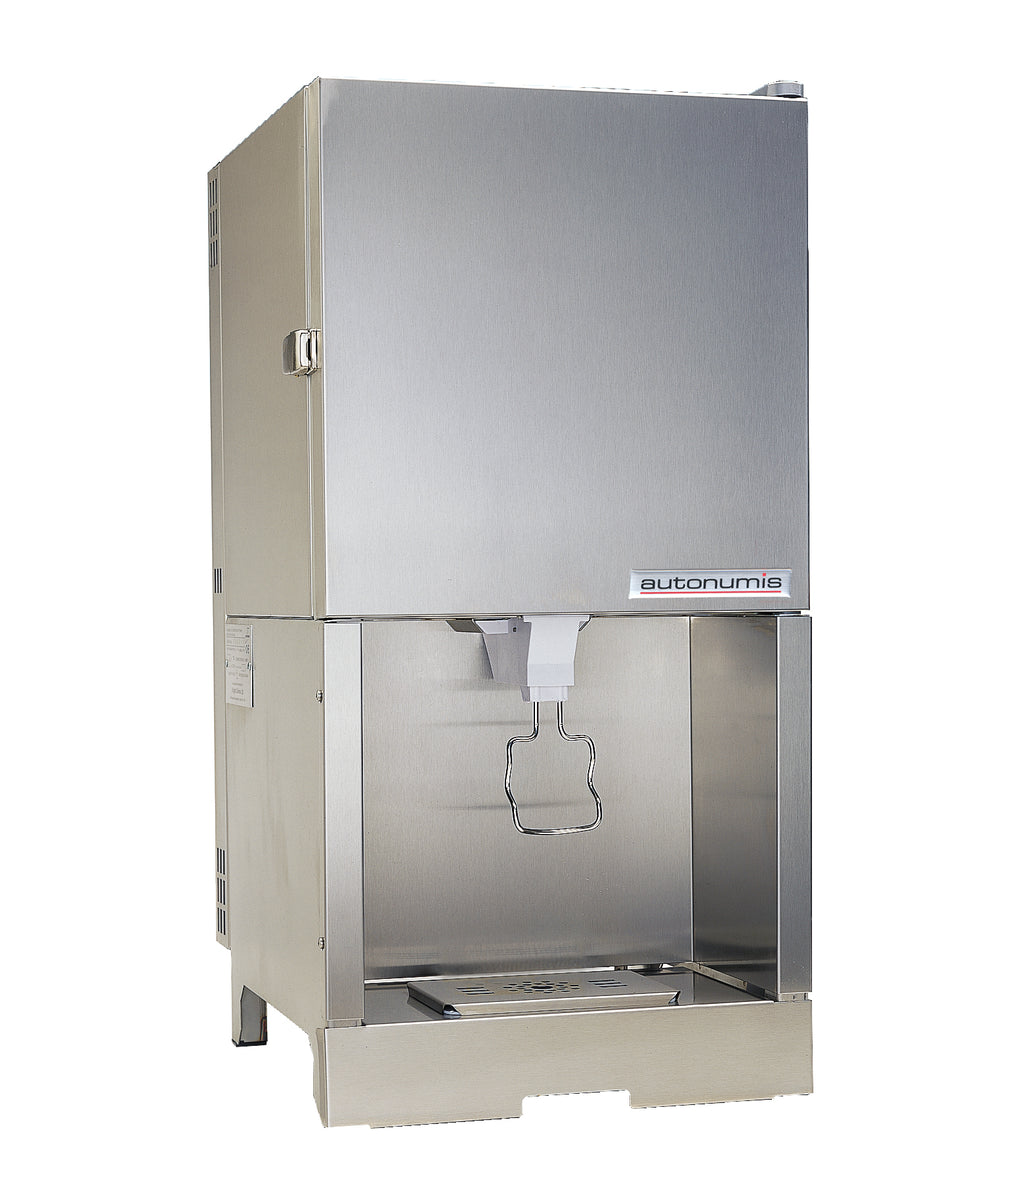 Autonumis 3 Gallon Dispenser Stainless Steel : LGC00002